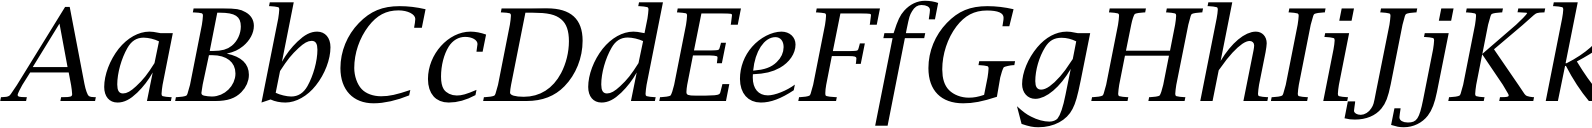 Lucida Bright Regular Italic